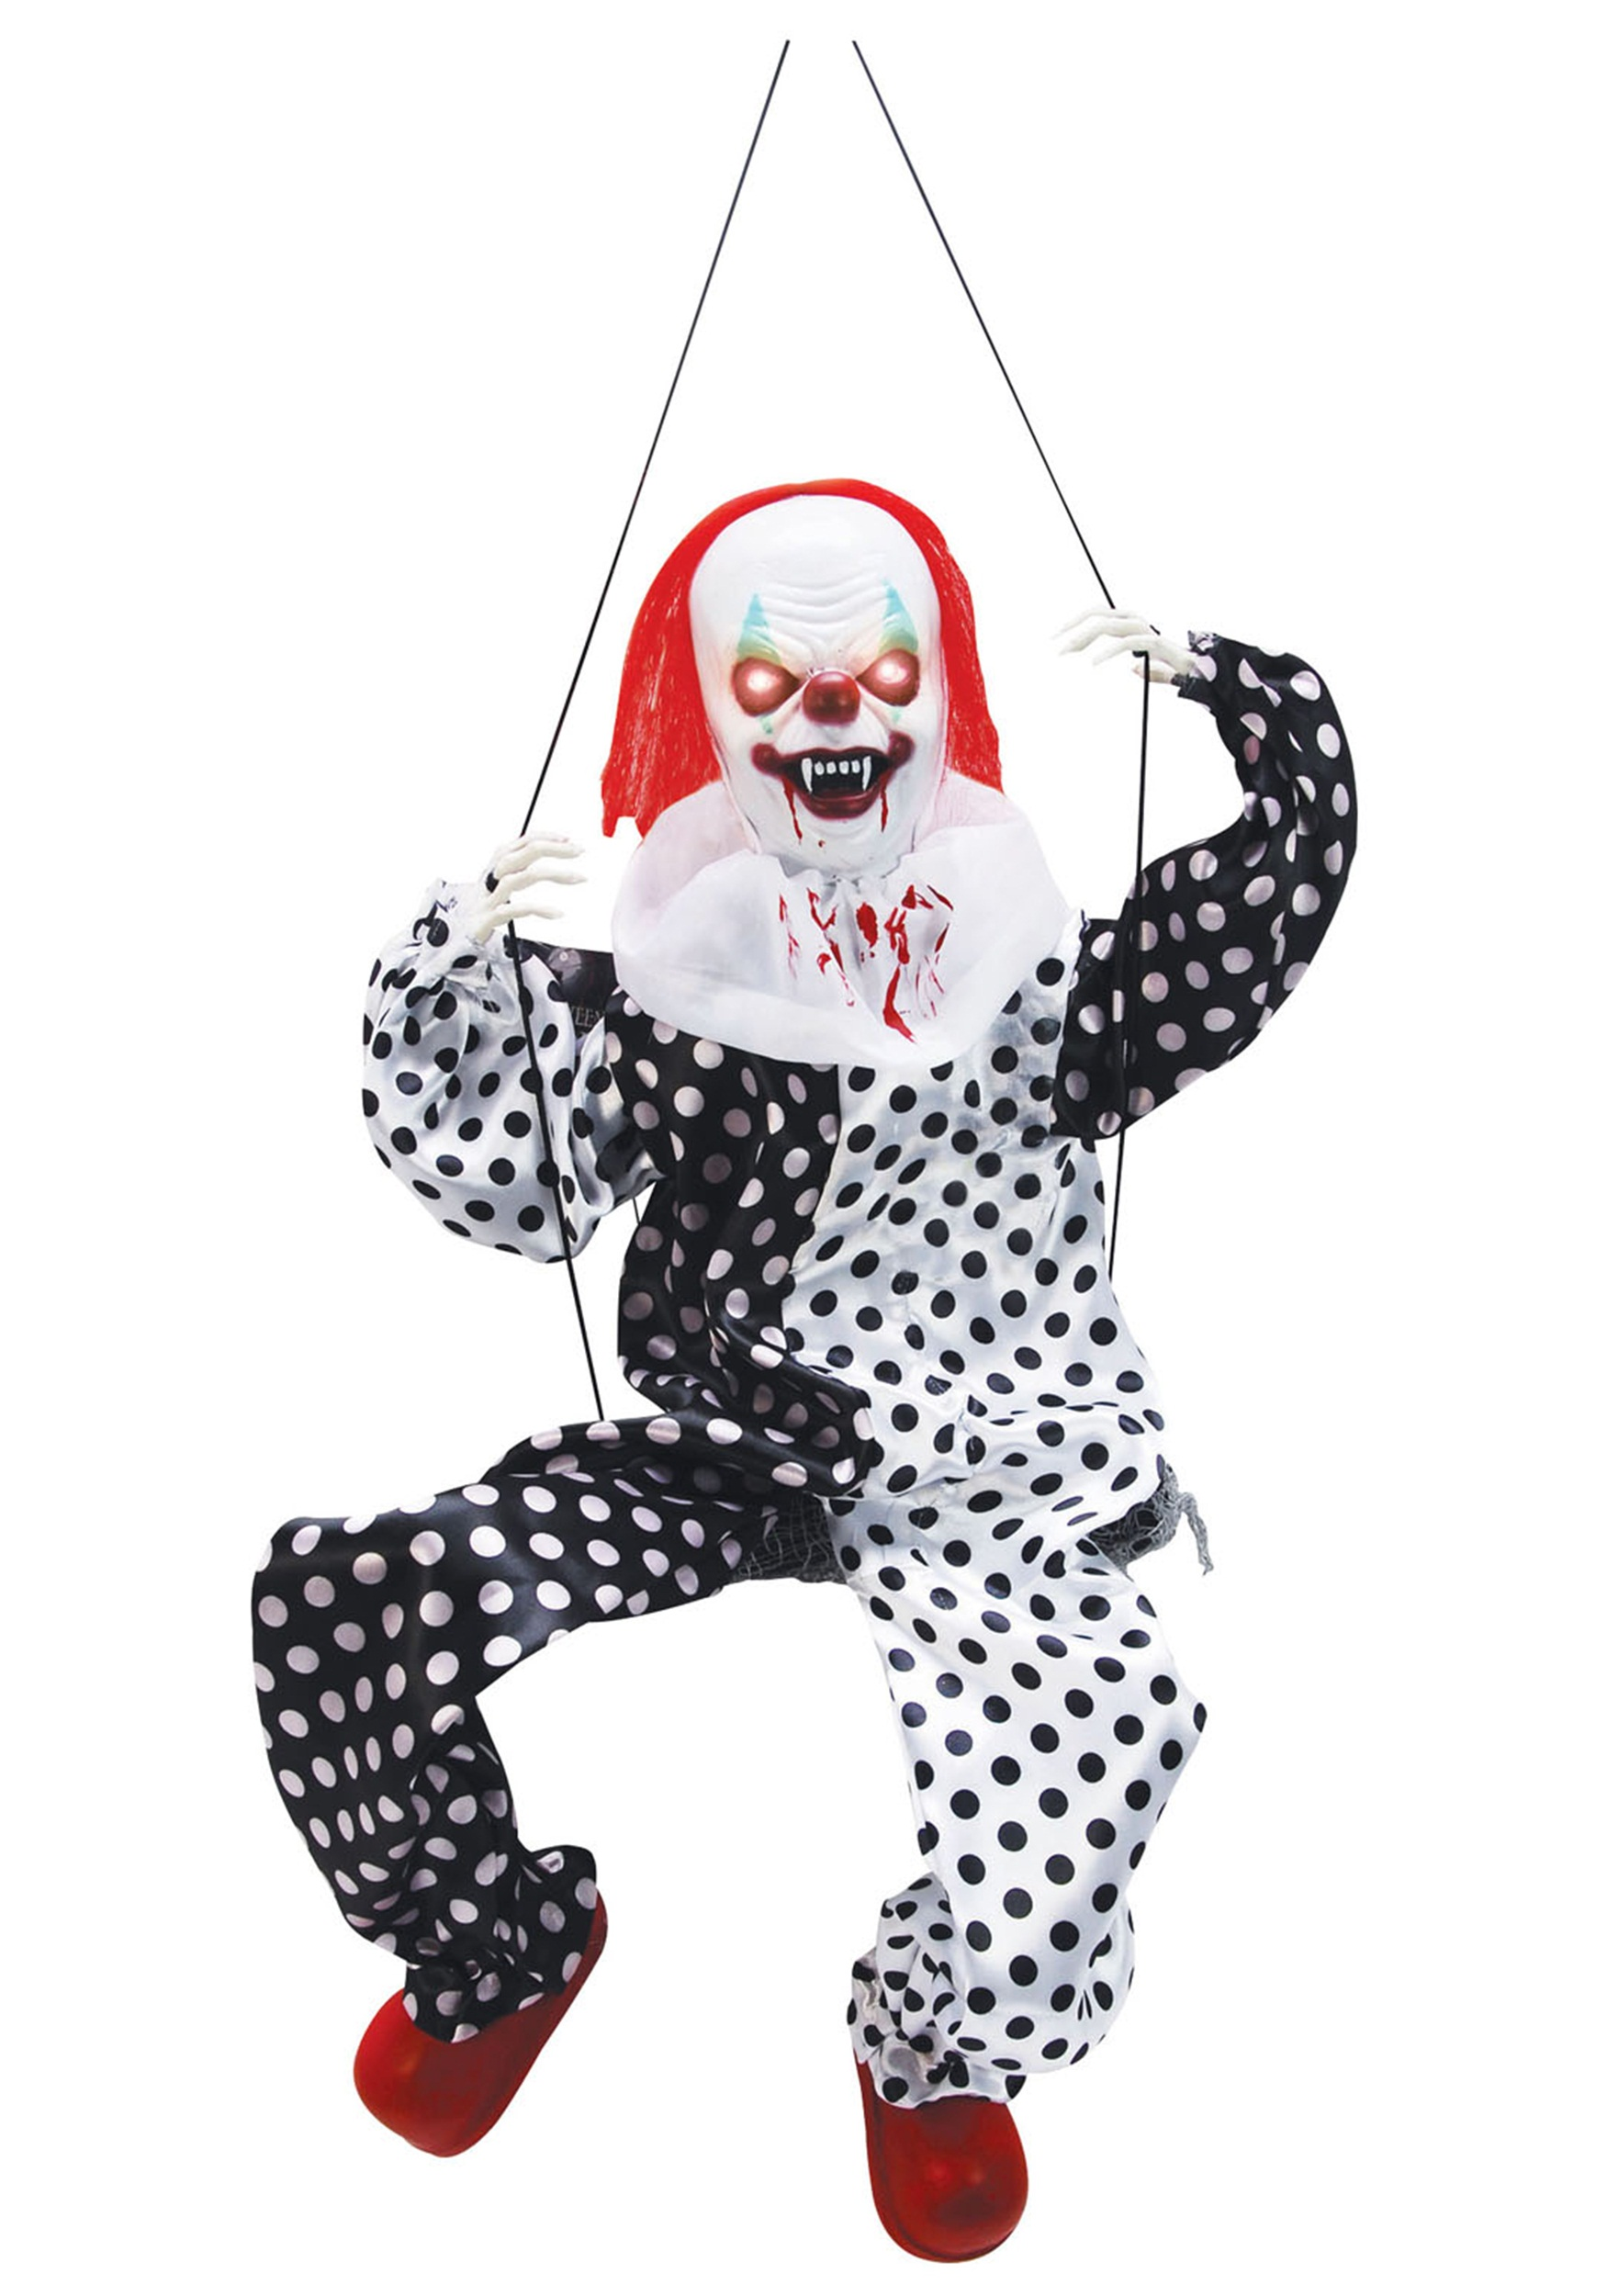 Leg Kicking Clown on Swing